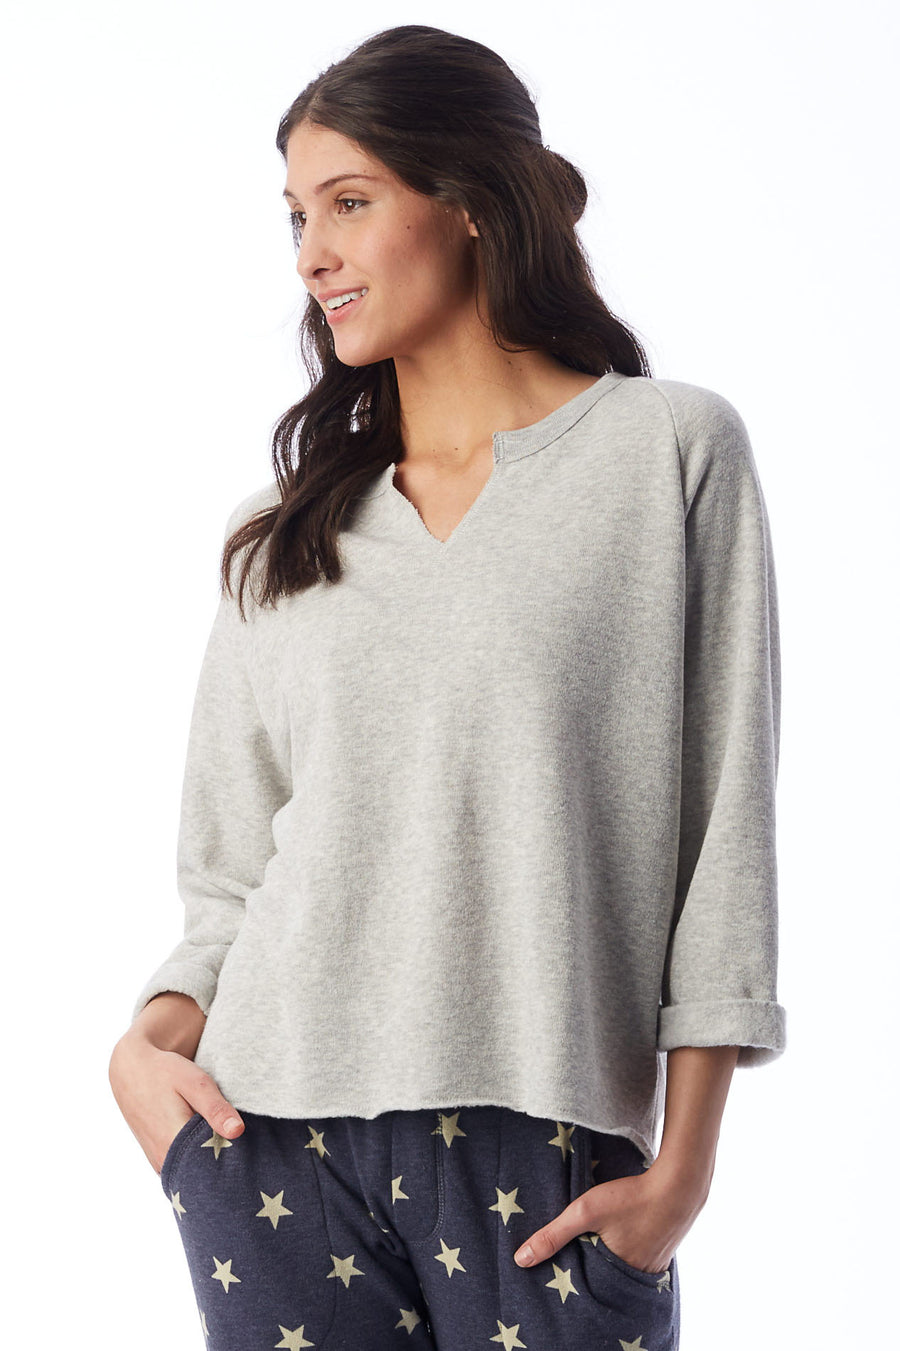 The Champ Remix Eco - Fleece Sweatshirt - Eco Oatmeal